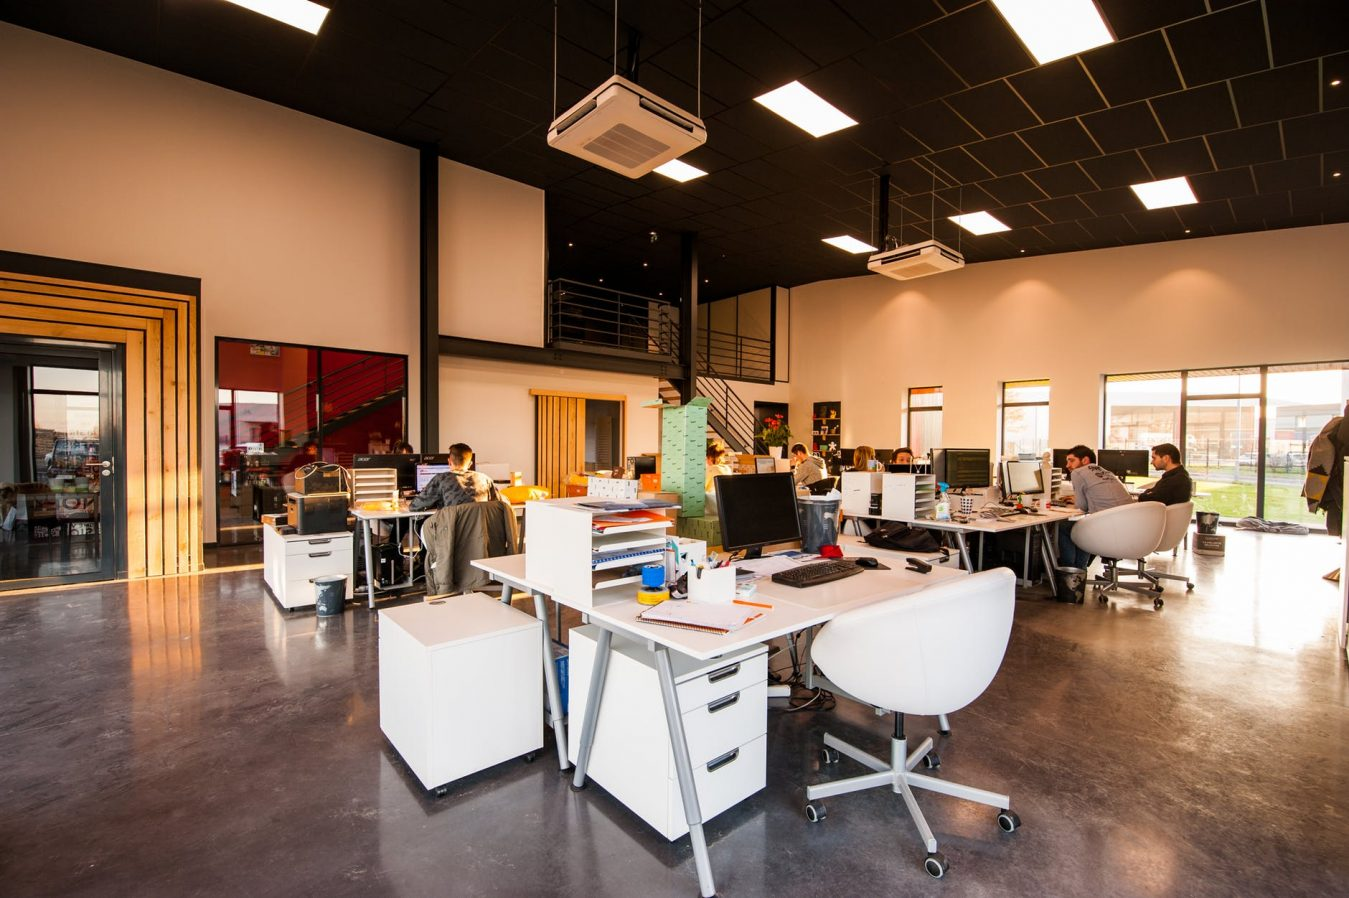 Tips to Find the Best Office Space